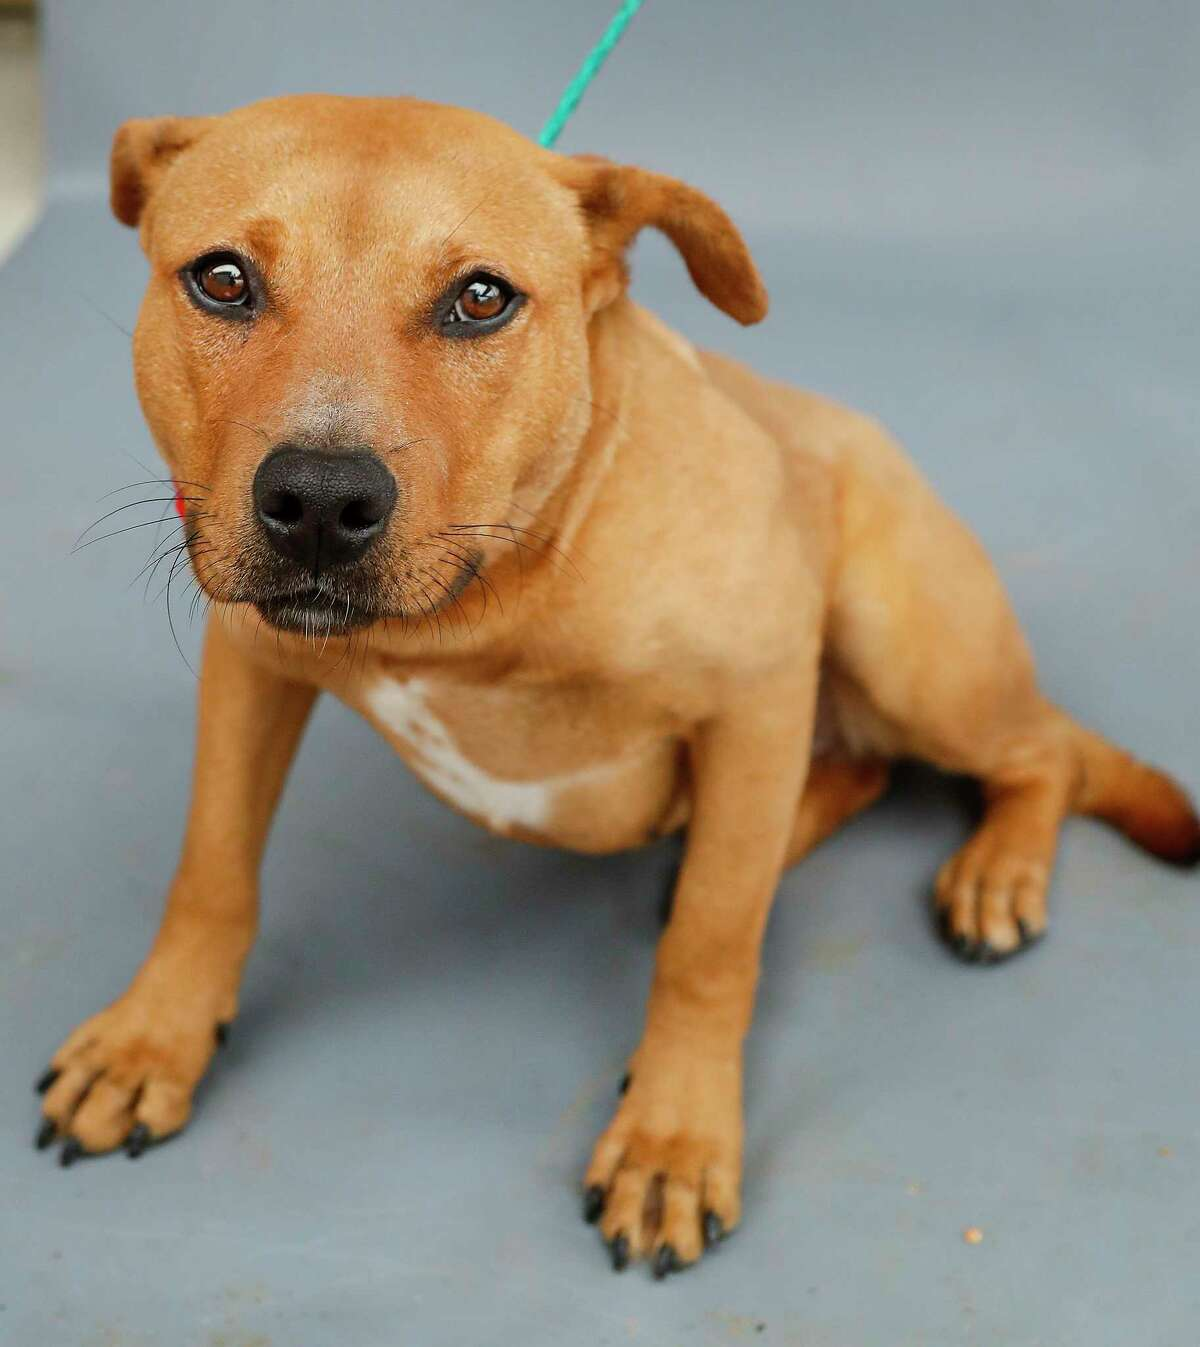 Nani (A566420) is a 3-year-old, female Labrador Retriever mix available for adoption from Harris County Pets. Nani was brought into the shelter December 28 by animal control officers who discovered Nani and three other dogs abandoned and chained to trees and other structures in a wooded homeless encampment in Spring. After a 10-day court-ordered appeal by a Justice of the Peace, there was no one to claim ownership of the dogs, and thus ownership was awarded to Harris County Public Health to allow the animals to be adopted. All four have been removed from medical quarantine, and two of those dogs have already been adopted. Nani is very people-friendly but shy.